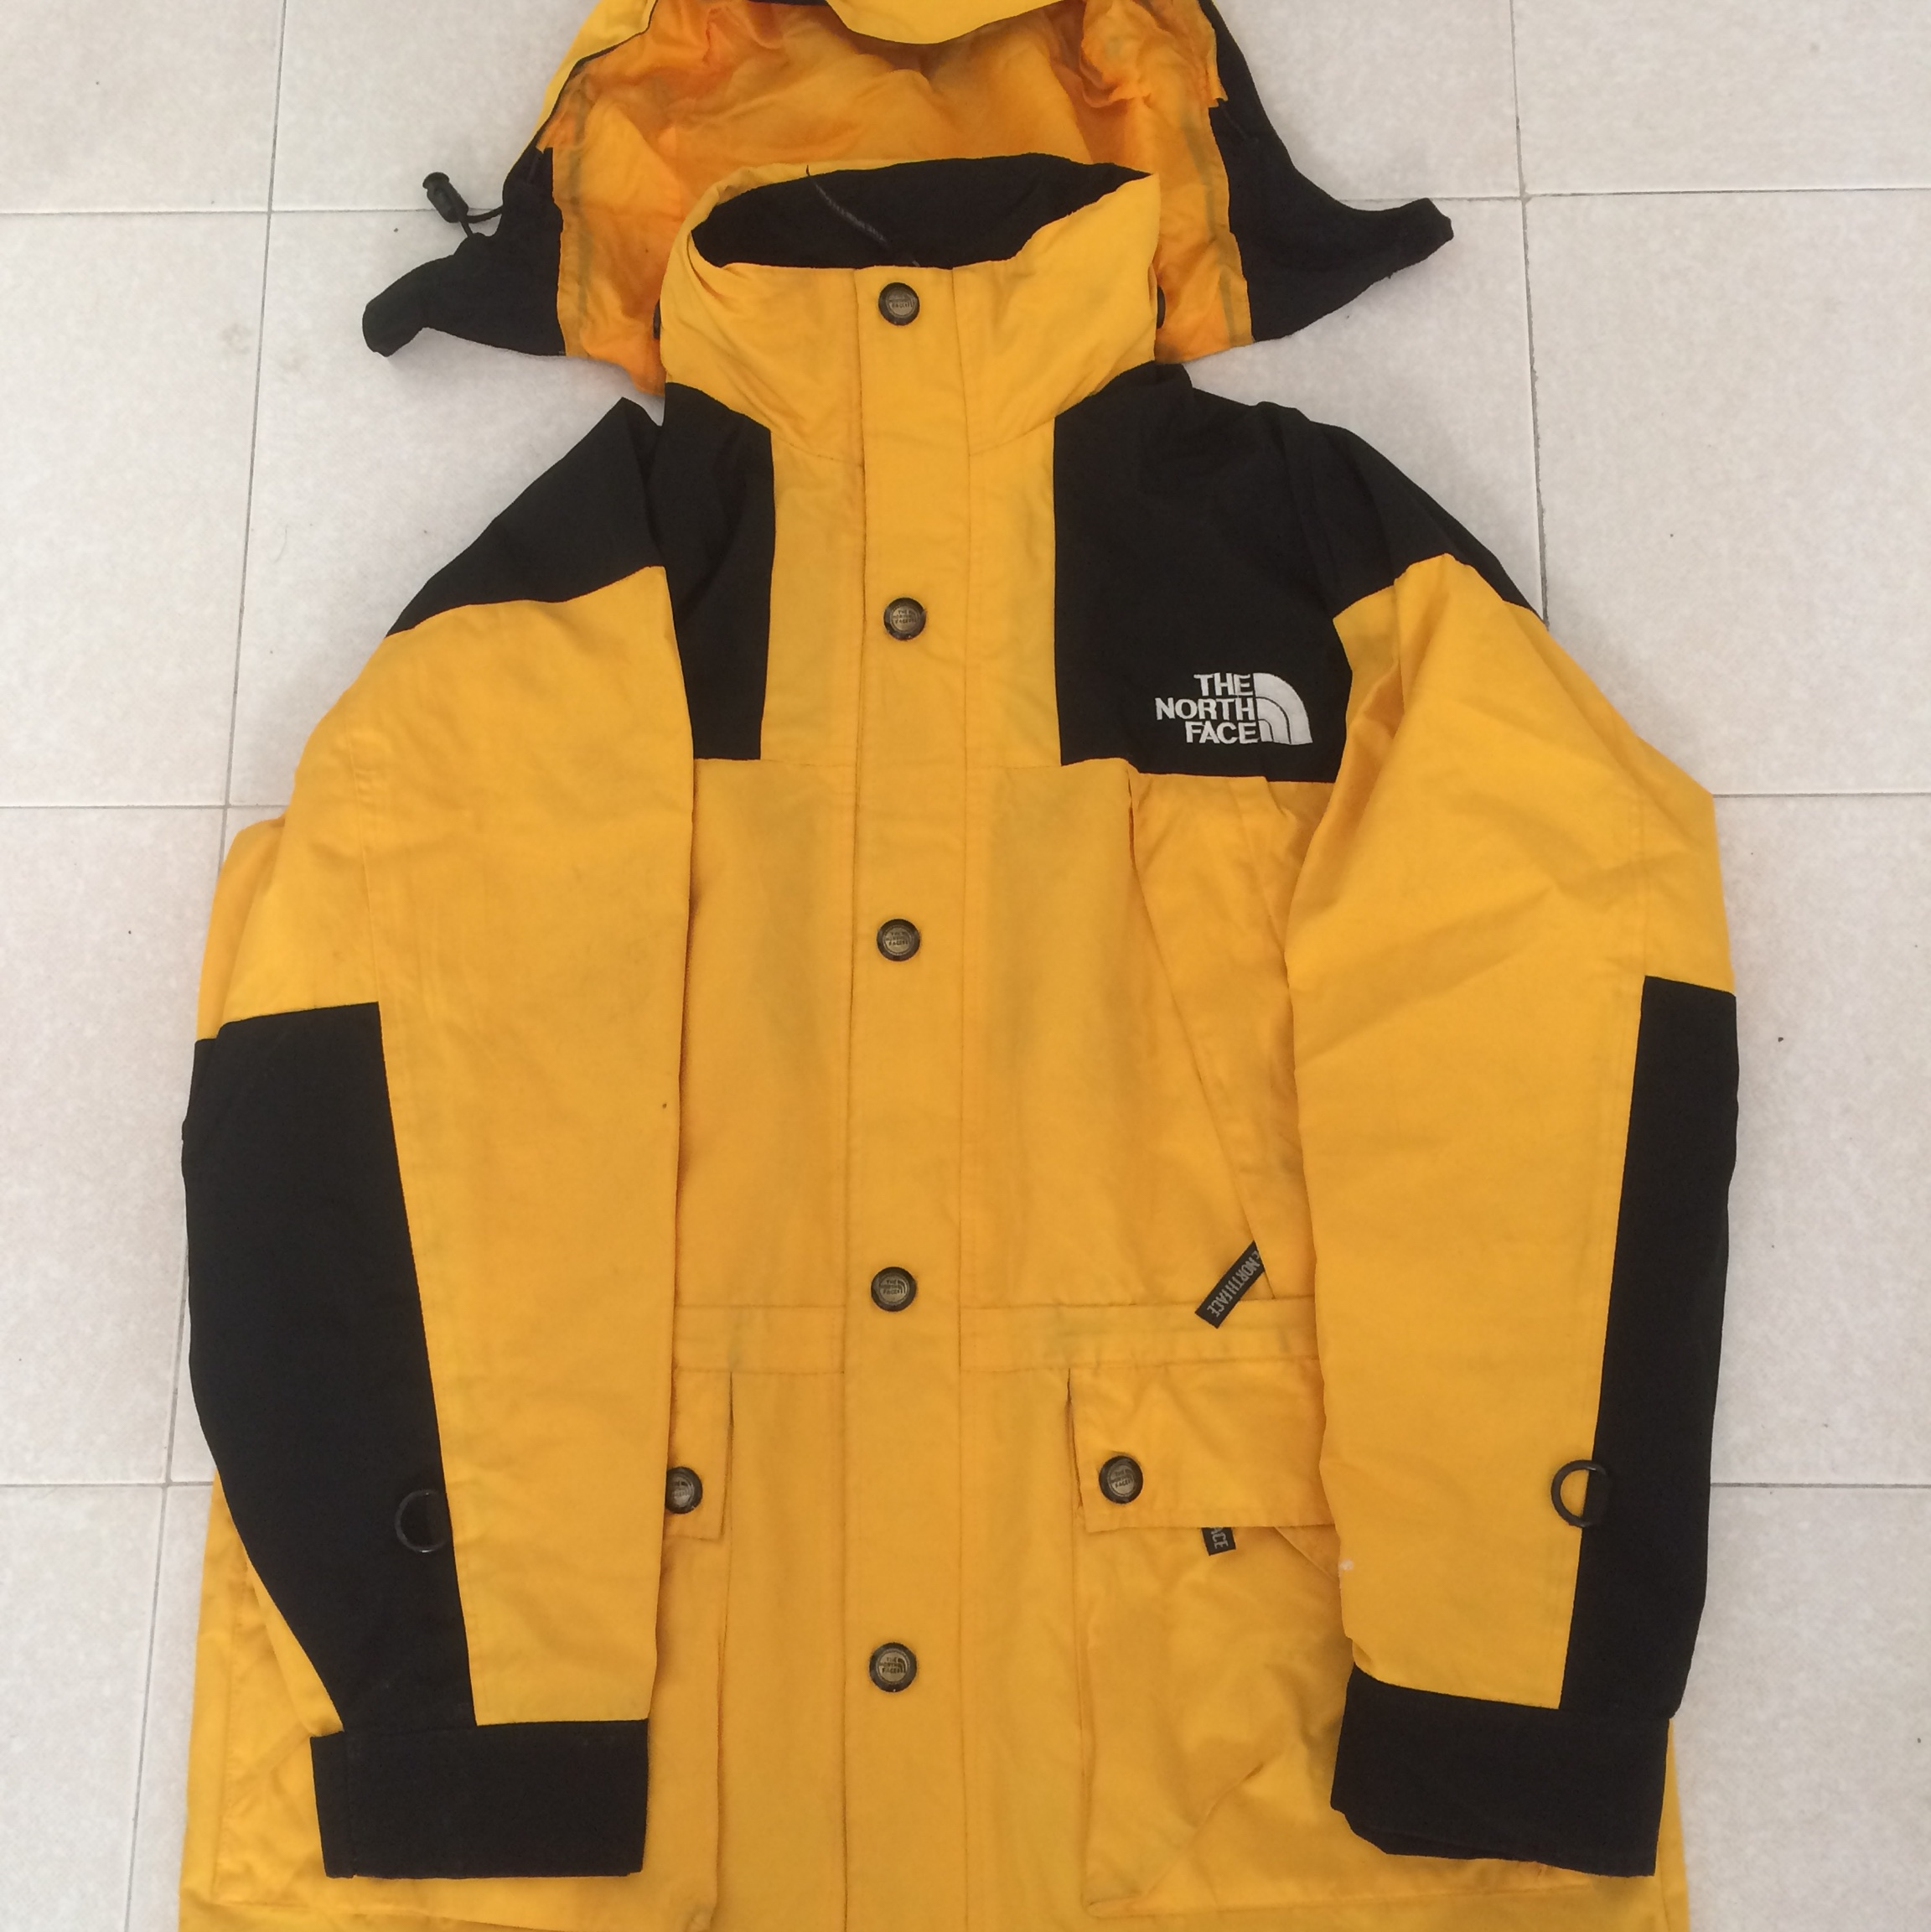 66cea42ce Vintage The North Face Gore Tex Jacket Yellow/Black... - Depop